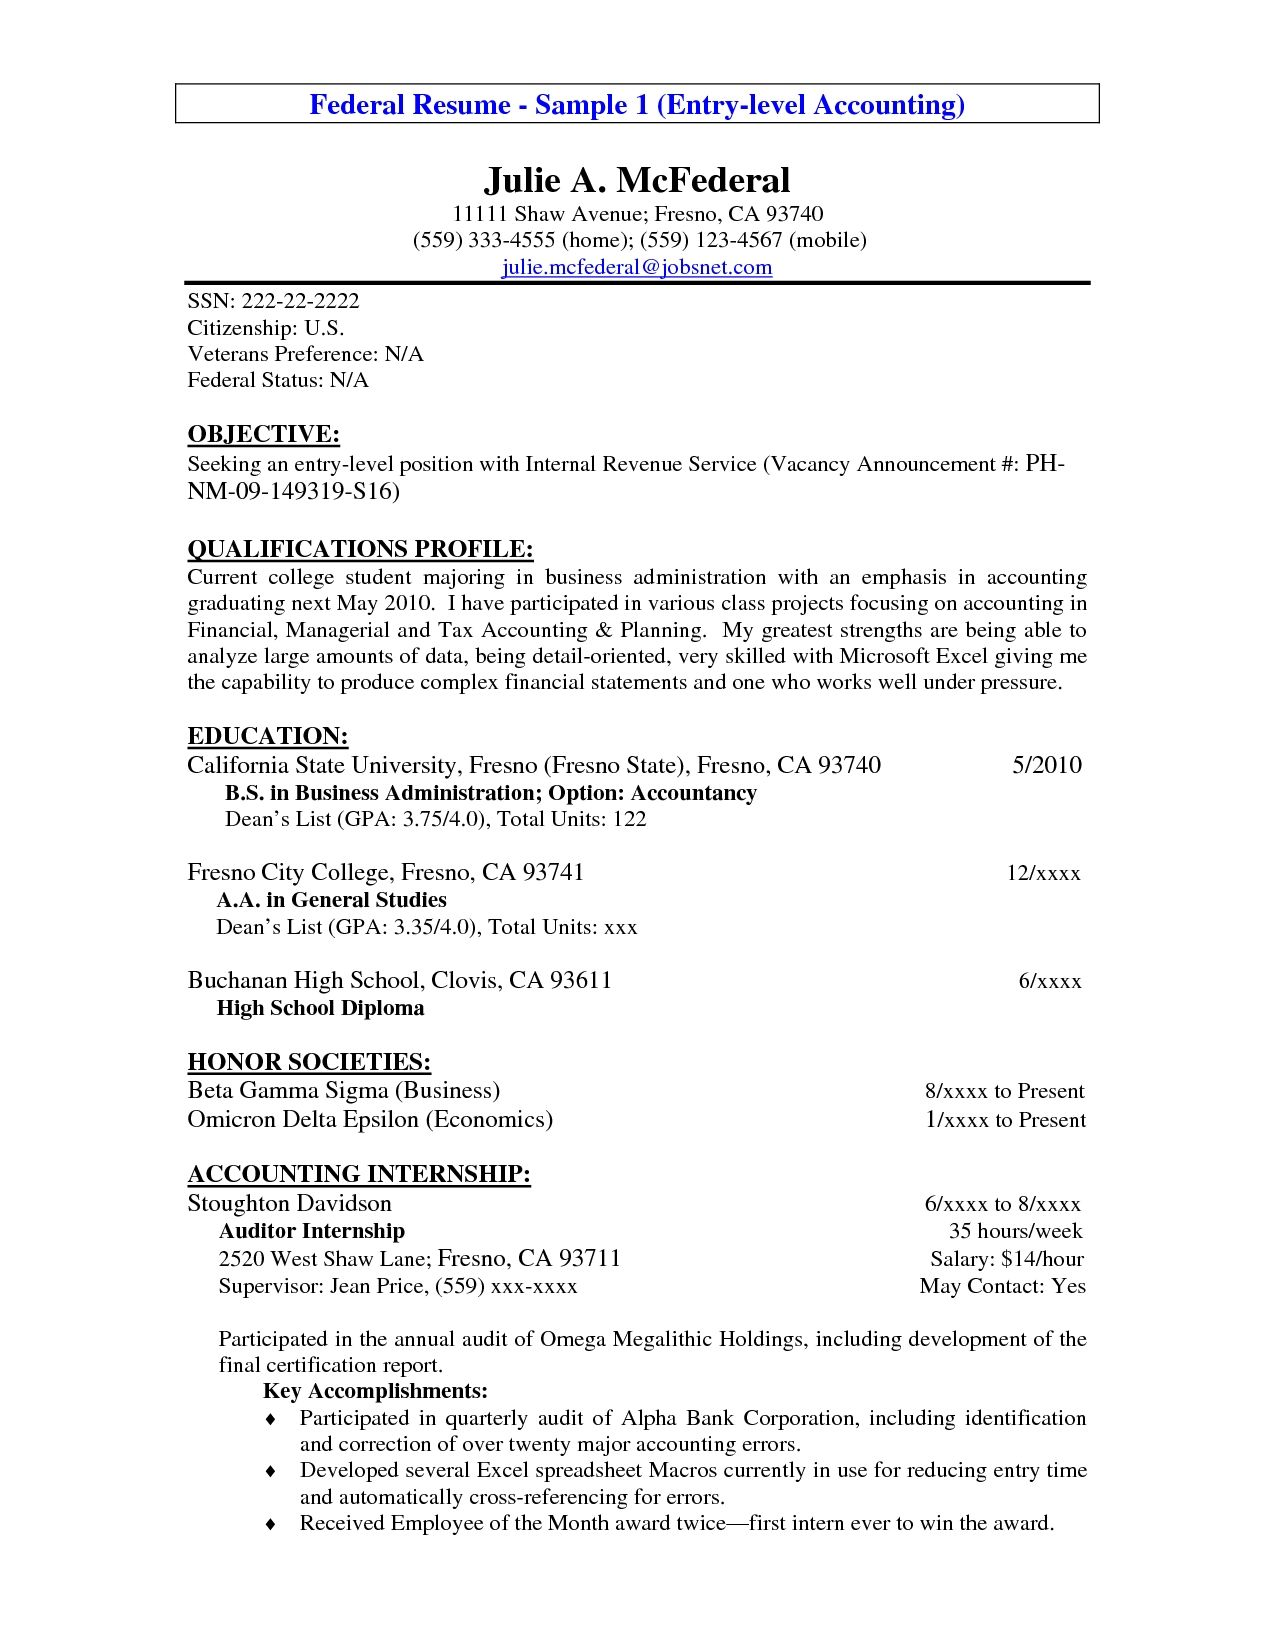 How To Write A Resume Objective Entry Level Resume Example Entry Level Accounting Resume Sample